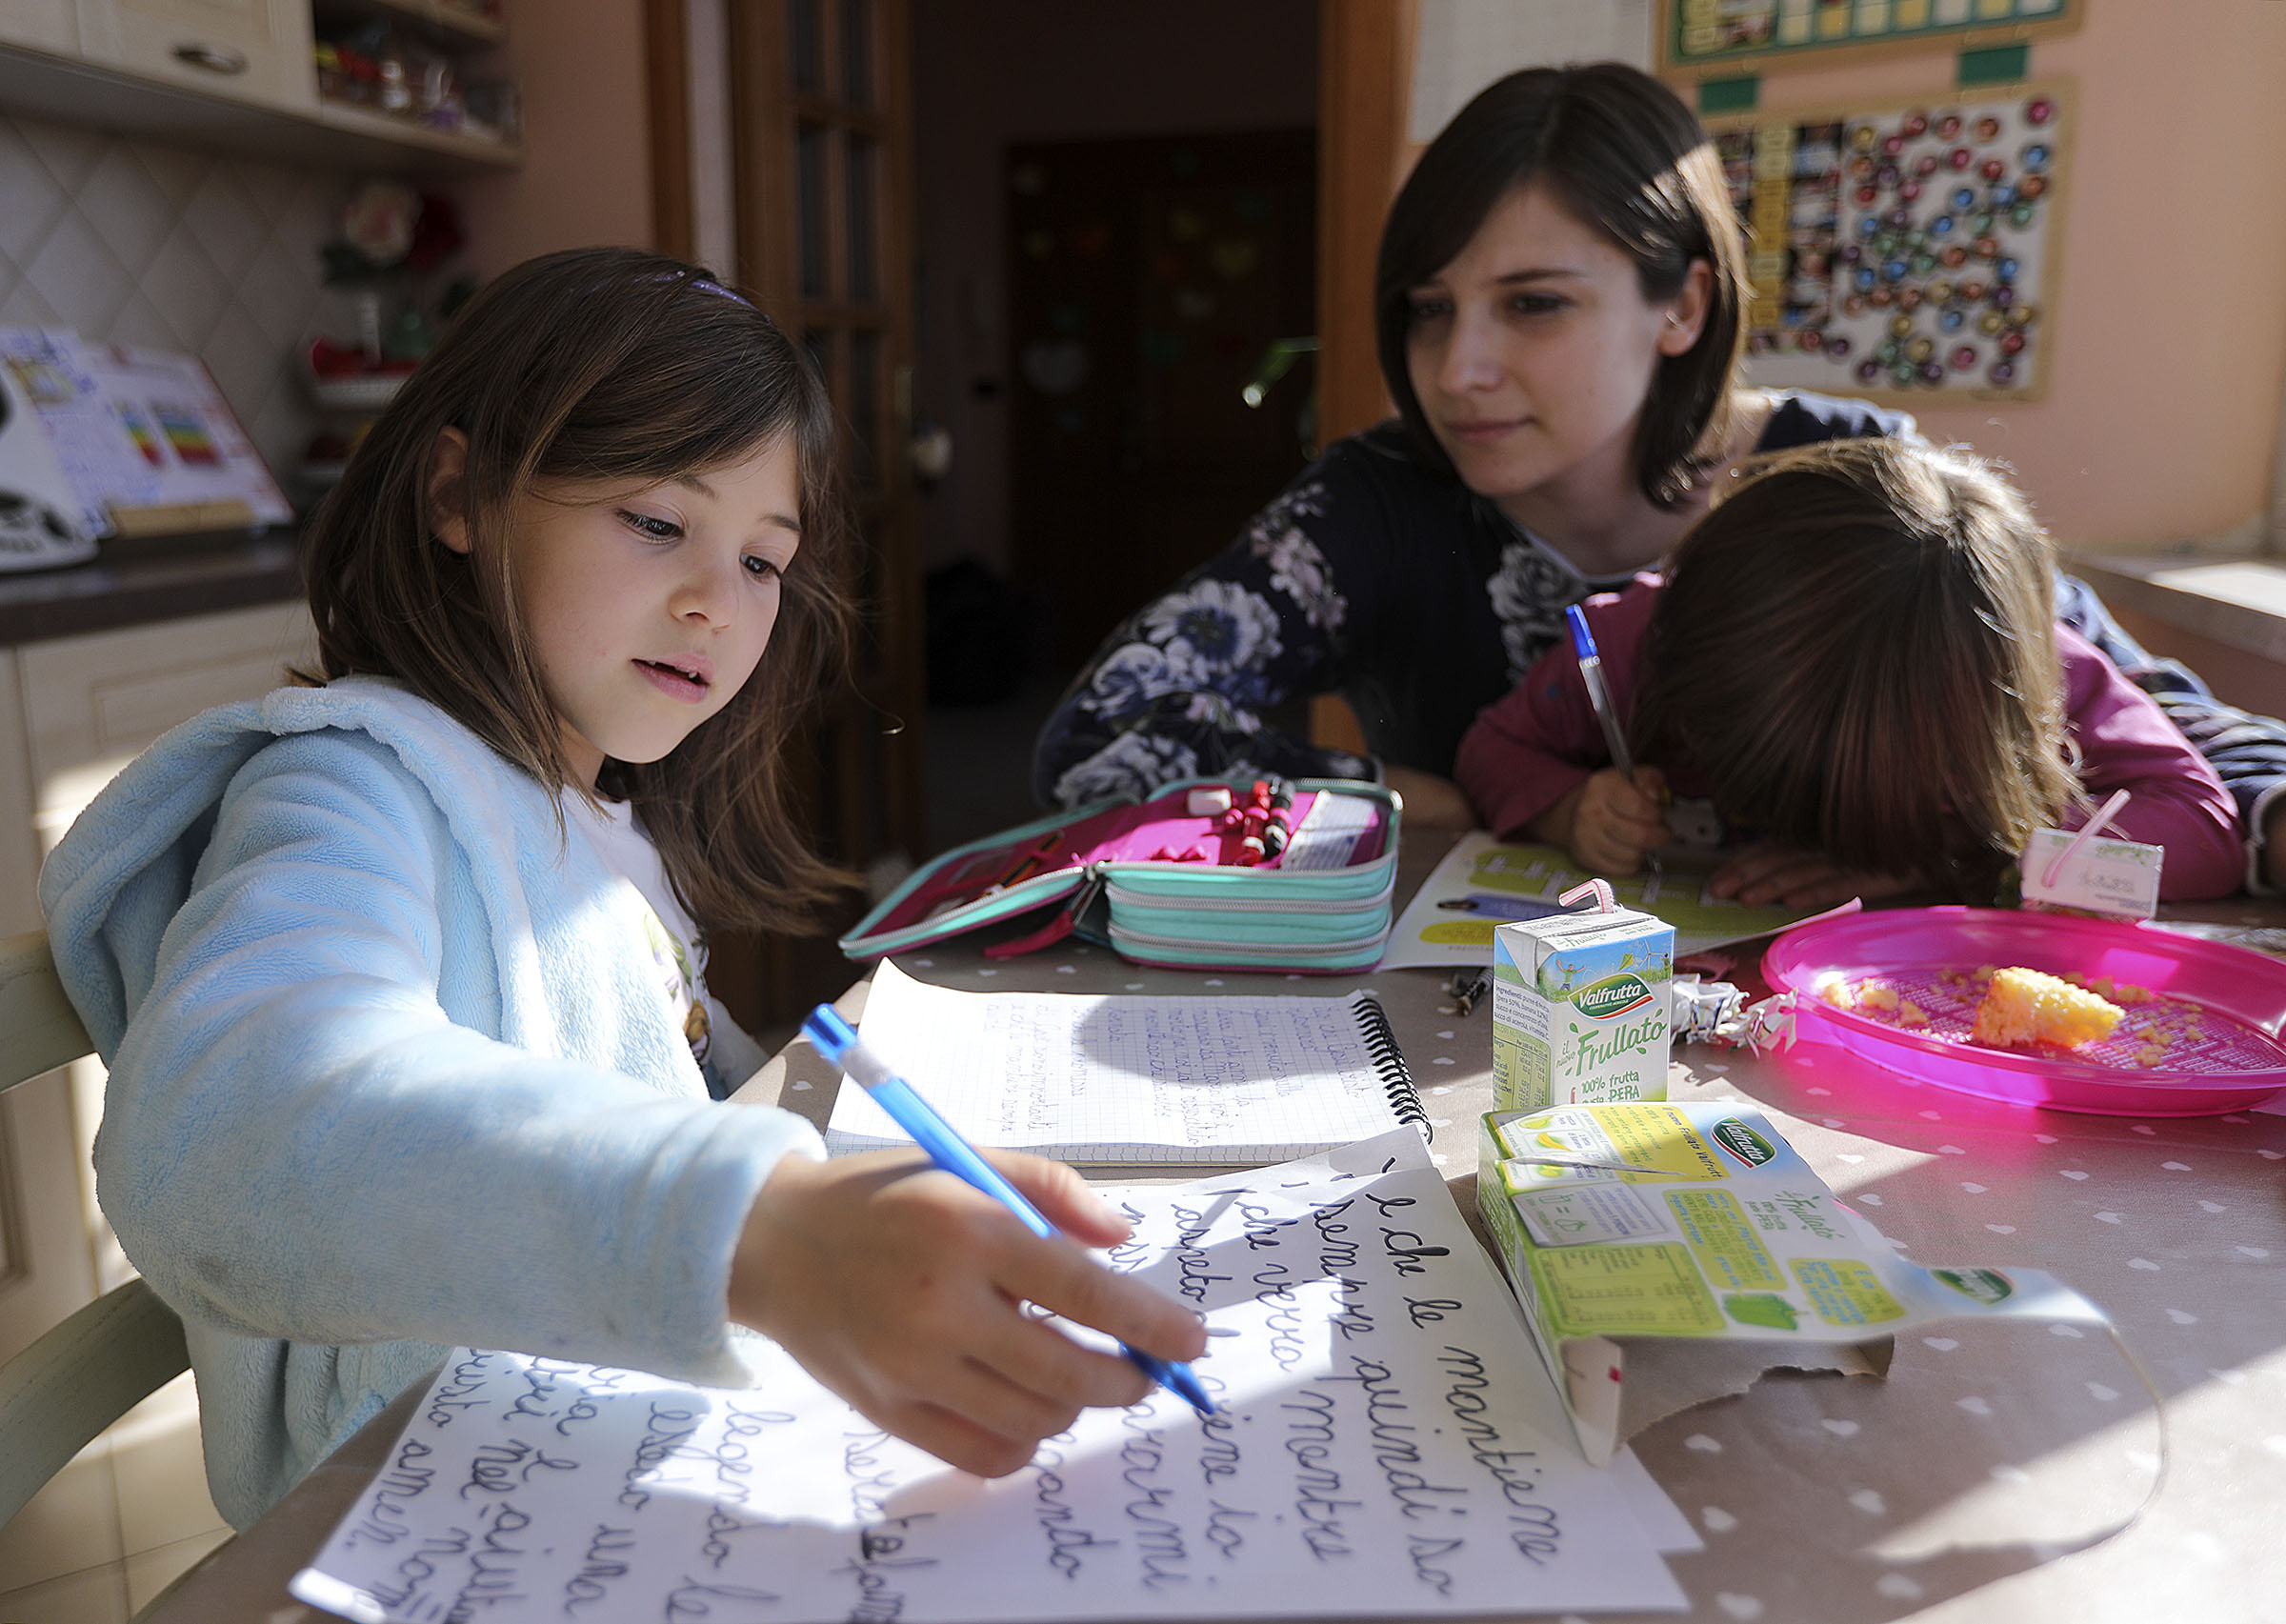 Emma Salerno, 7, prepares her Primary talk at home with her mother, Norma, and sister, Alice, in Rome, Italy, on Sunday morning, Nov. 18, 2018.